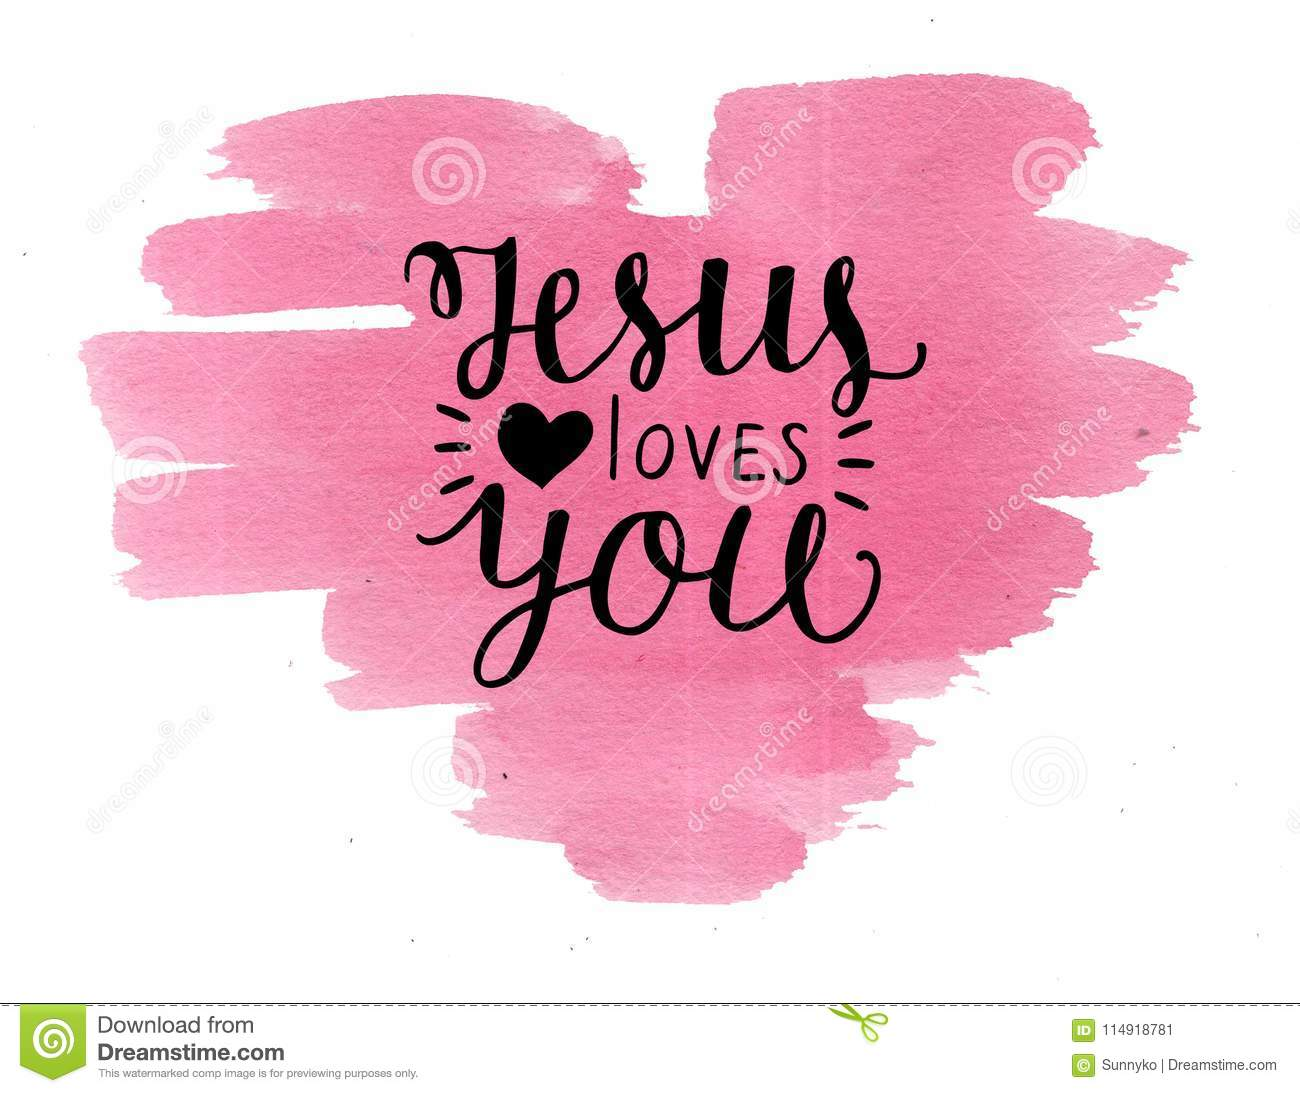 Jesus Loves You Graphics | www.topsimages.com